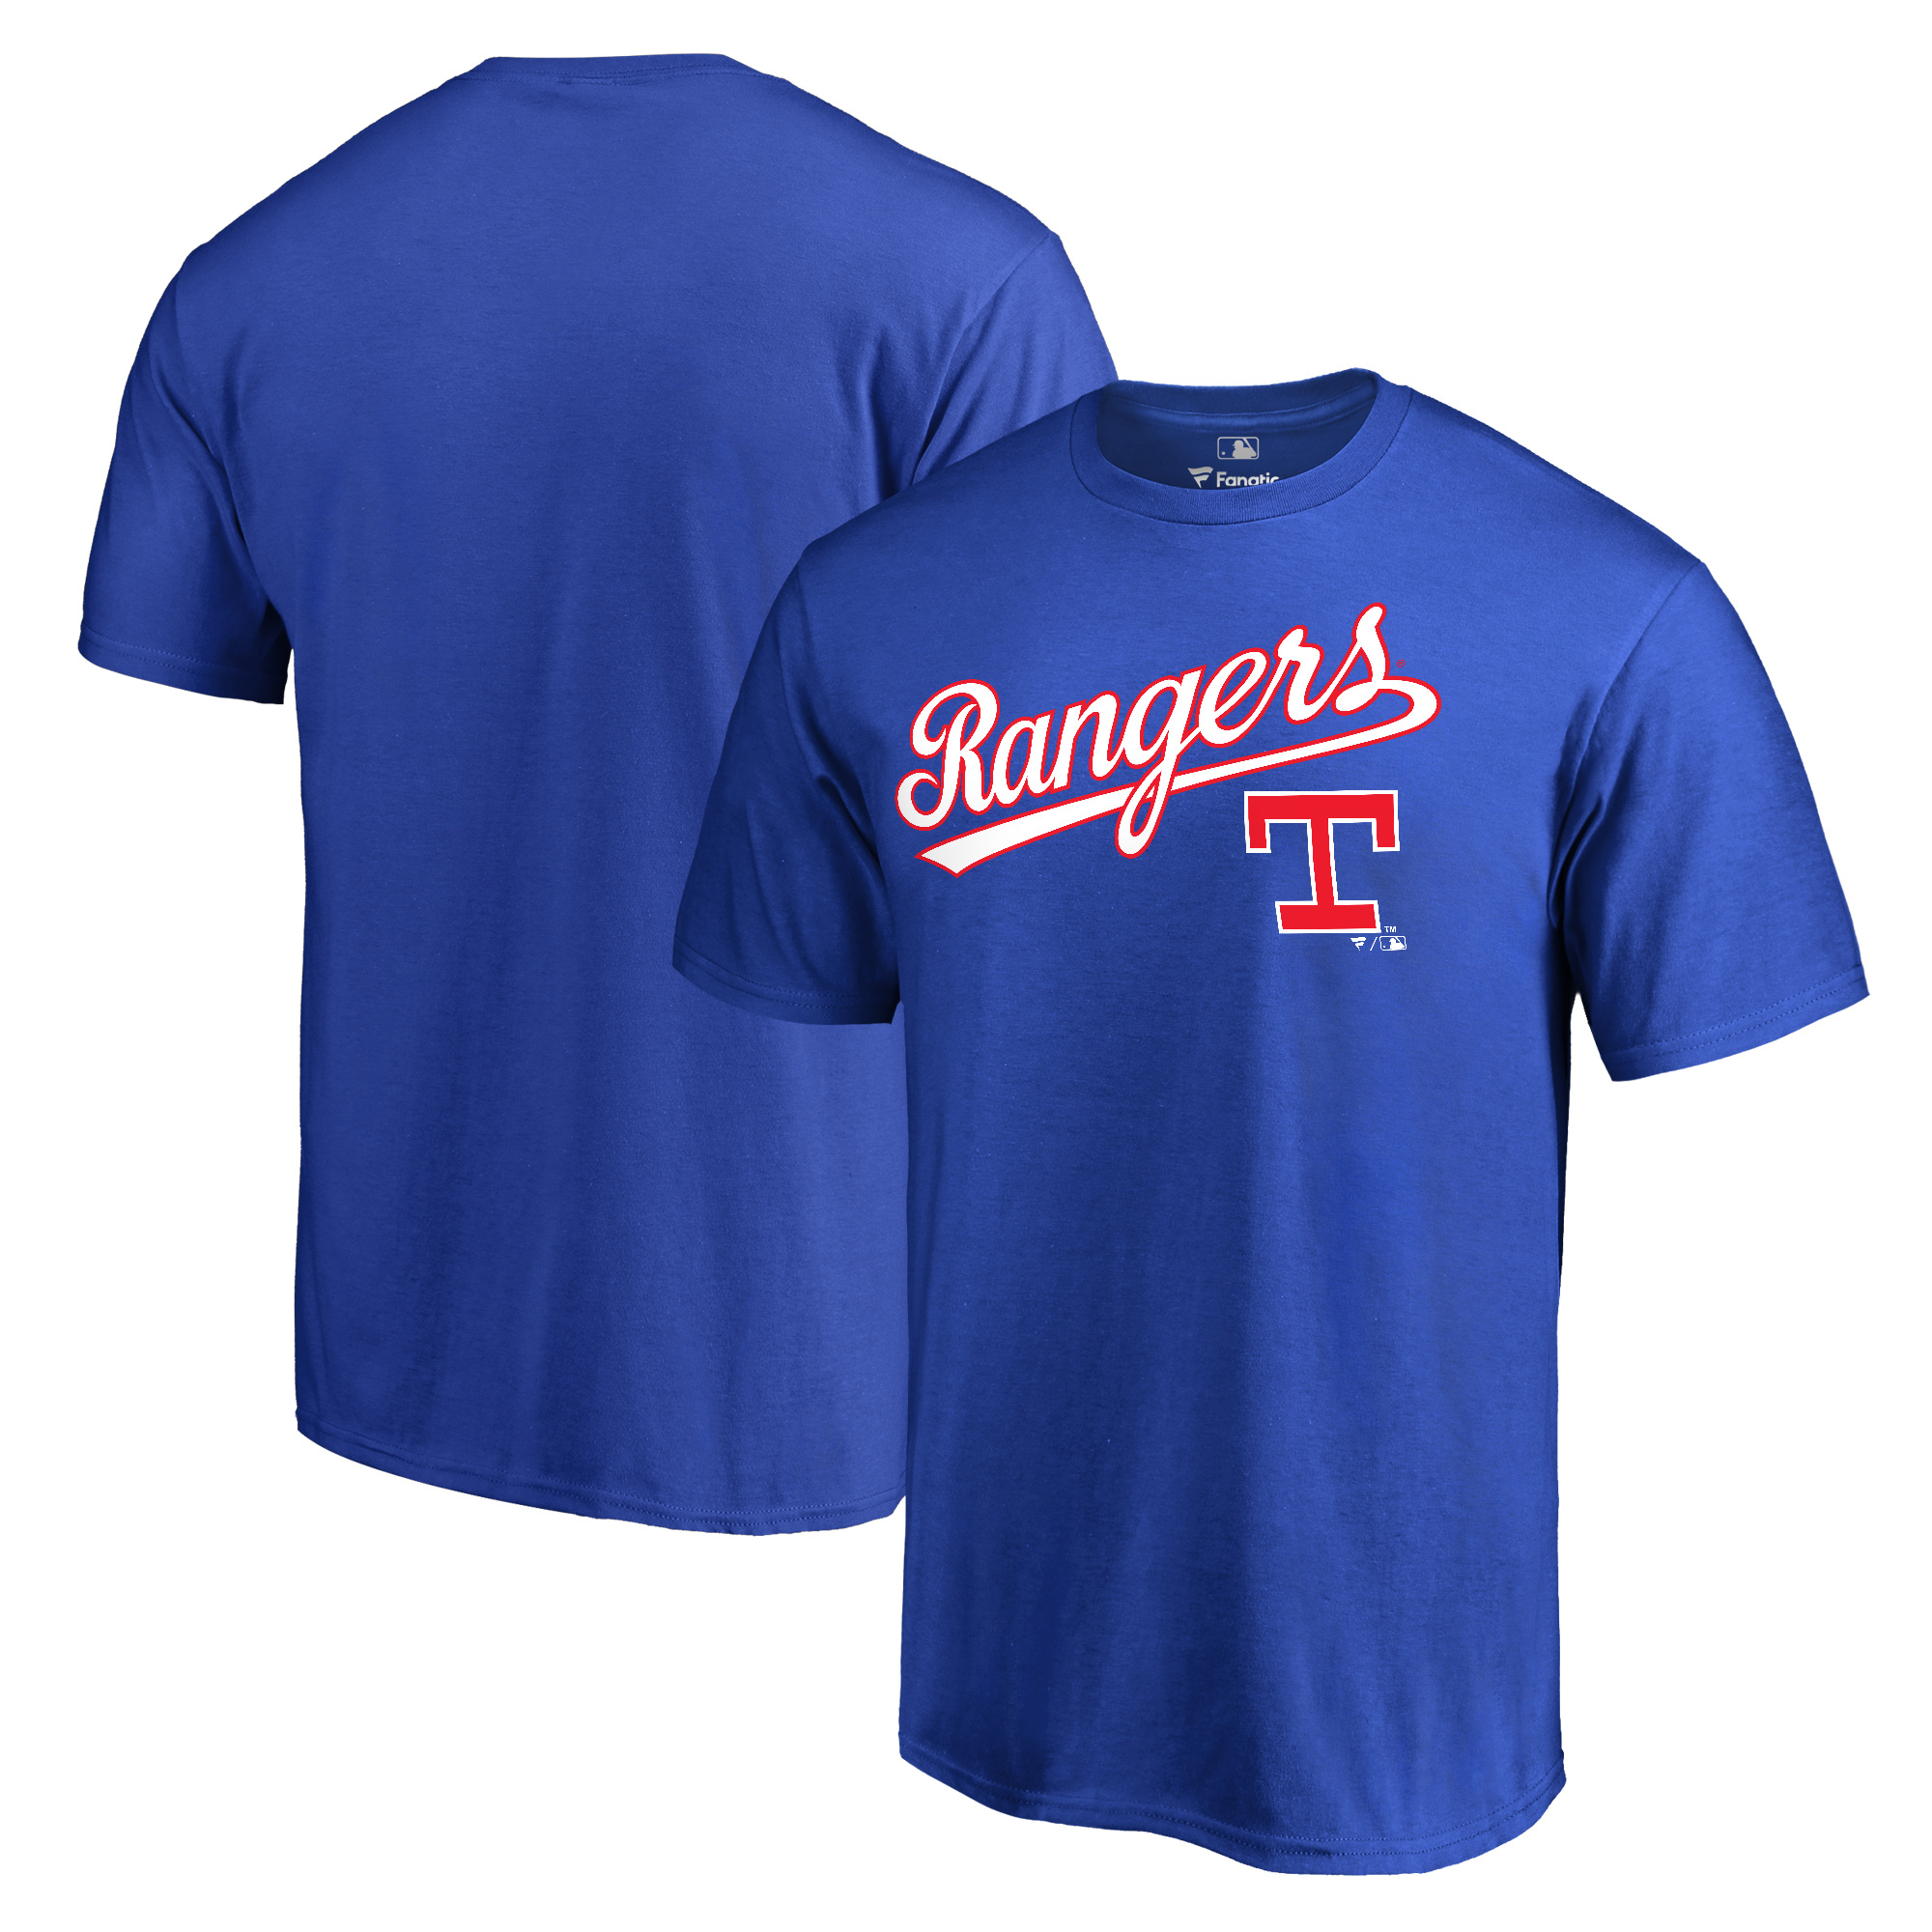 Texas Rangers Fanatics Branded Cooperstown Collection Wahconah T-Shirt - Royal